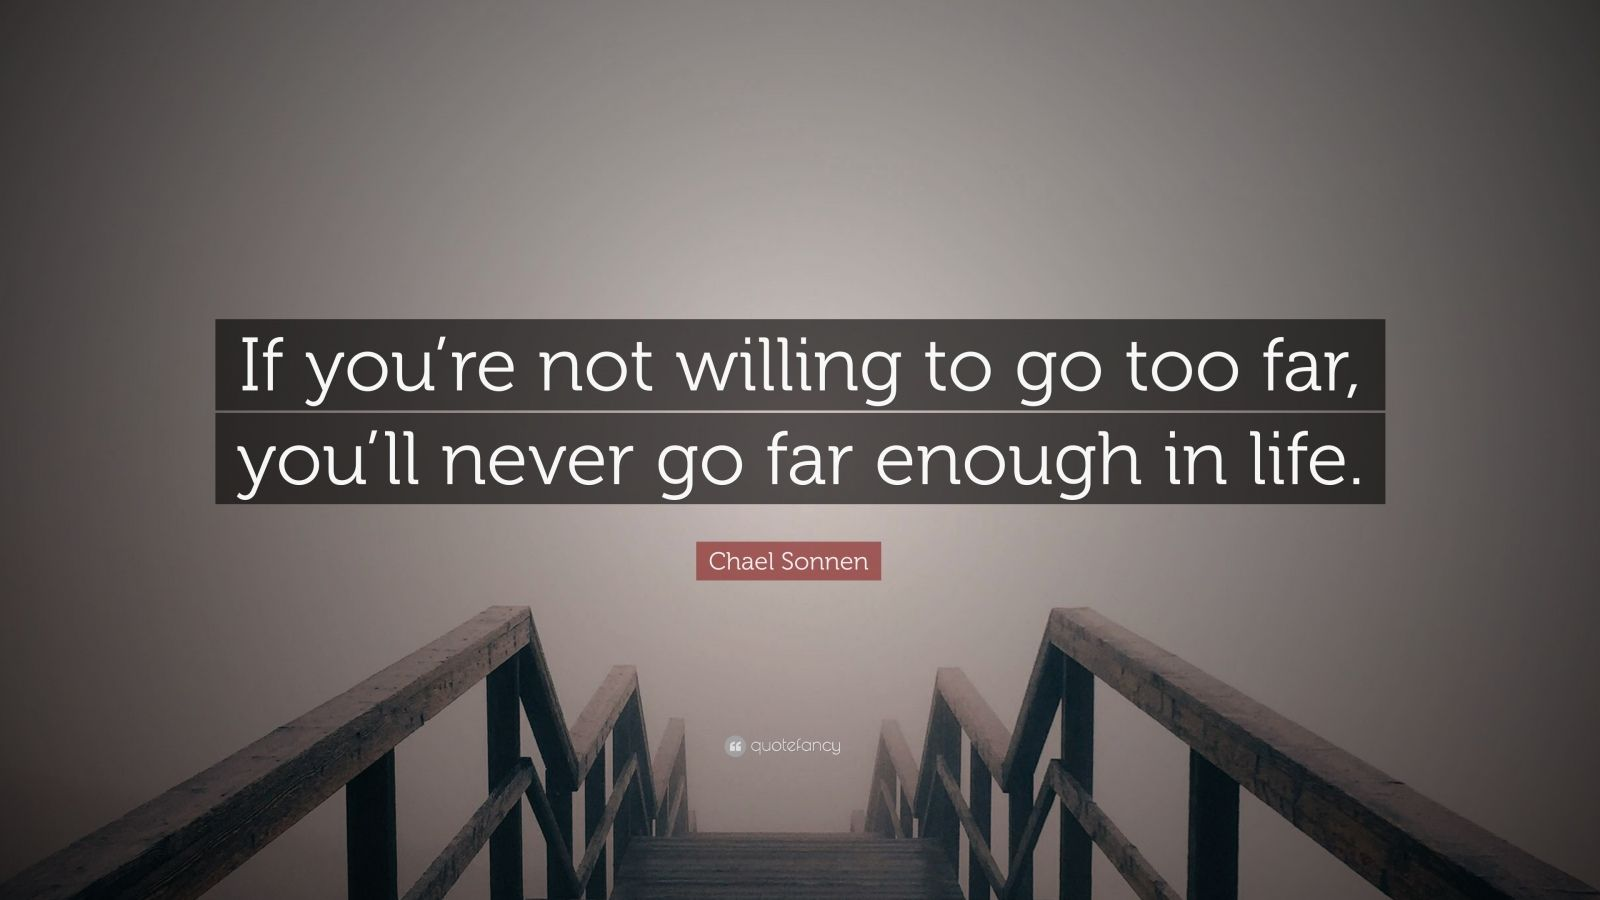 """Chael Sonnen Quote: """"If you're not willing to go too far, you'll never go far enough in life."""""""